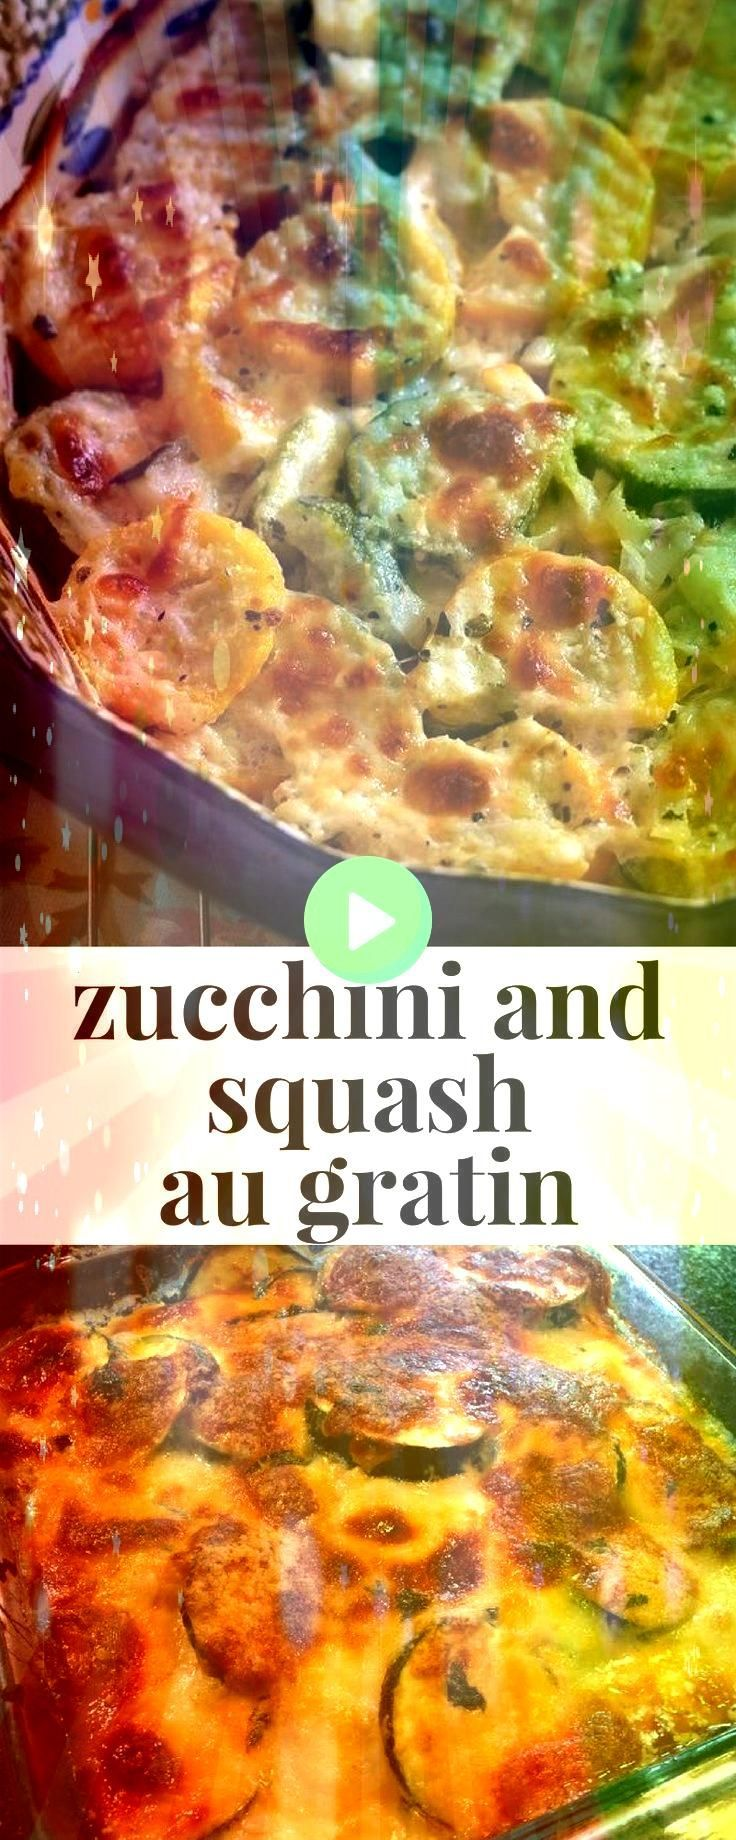 side dish this zucchini and squash au gratin is a delicious casseroleEasy summer side dish this zucchini and squash au gratin is a delicious casserole Wellington Meatball...